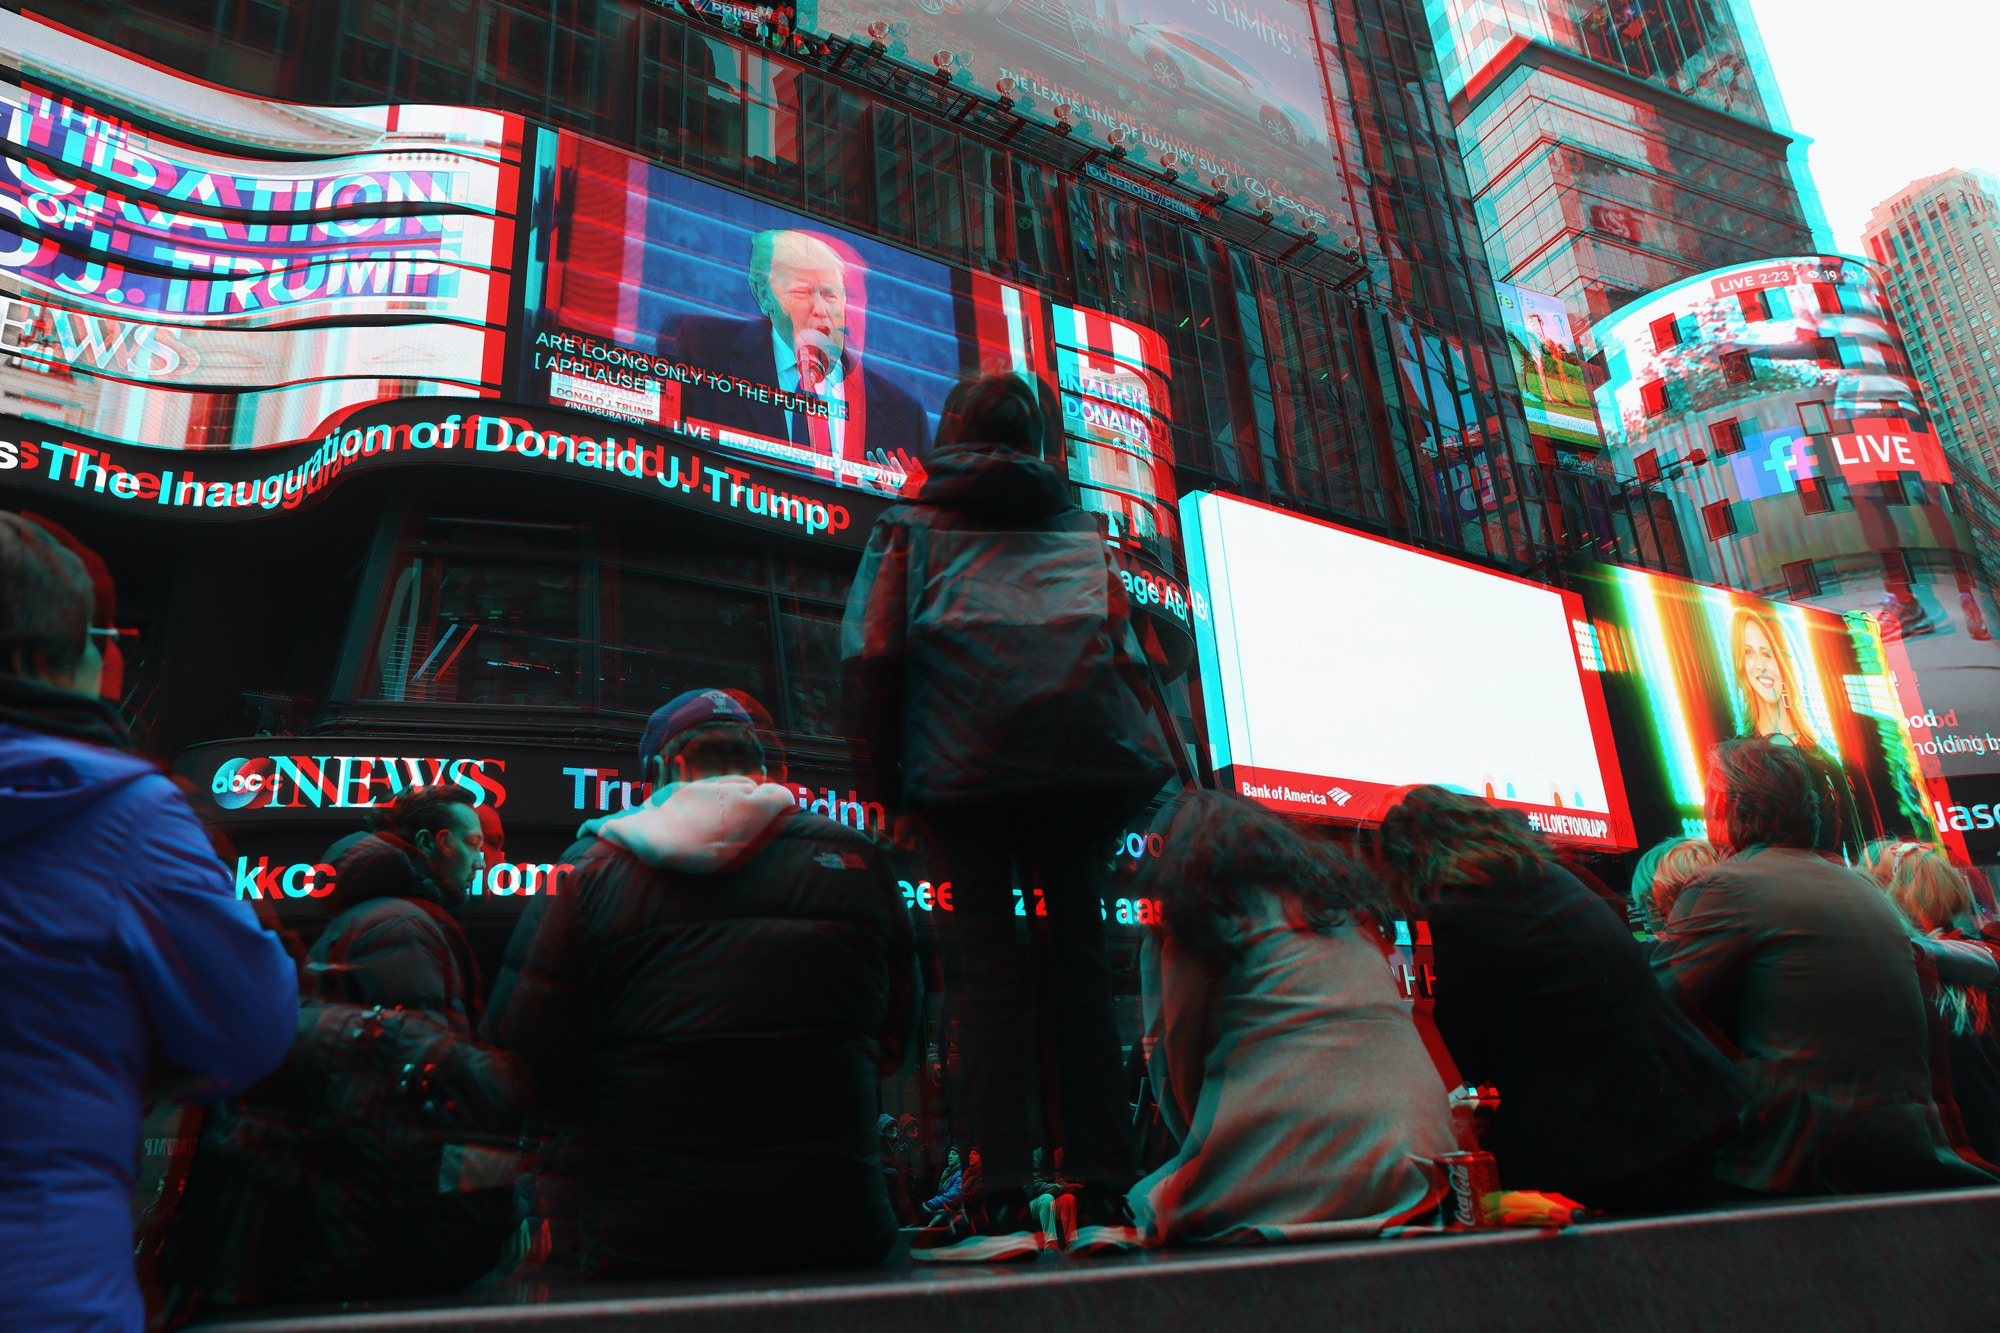 People watch the televised inauguration of Donald Trump as the 45th President of the United States while in Times Square on January 20, 2017 in New York City.